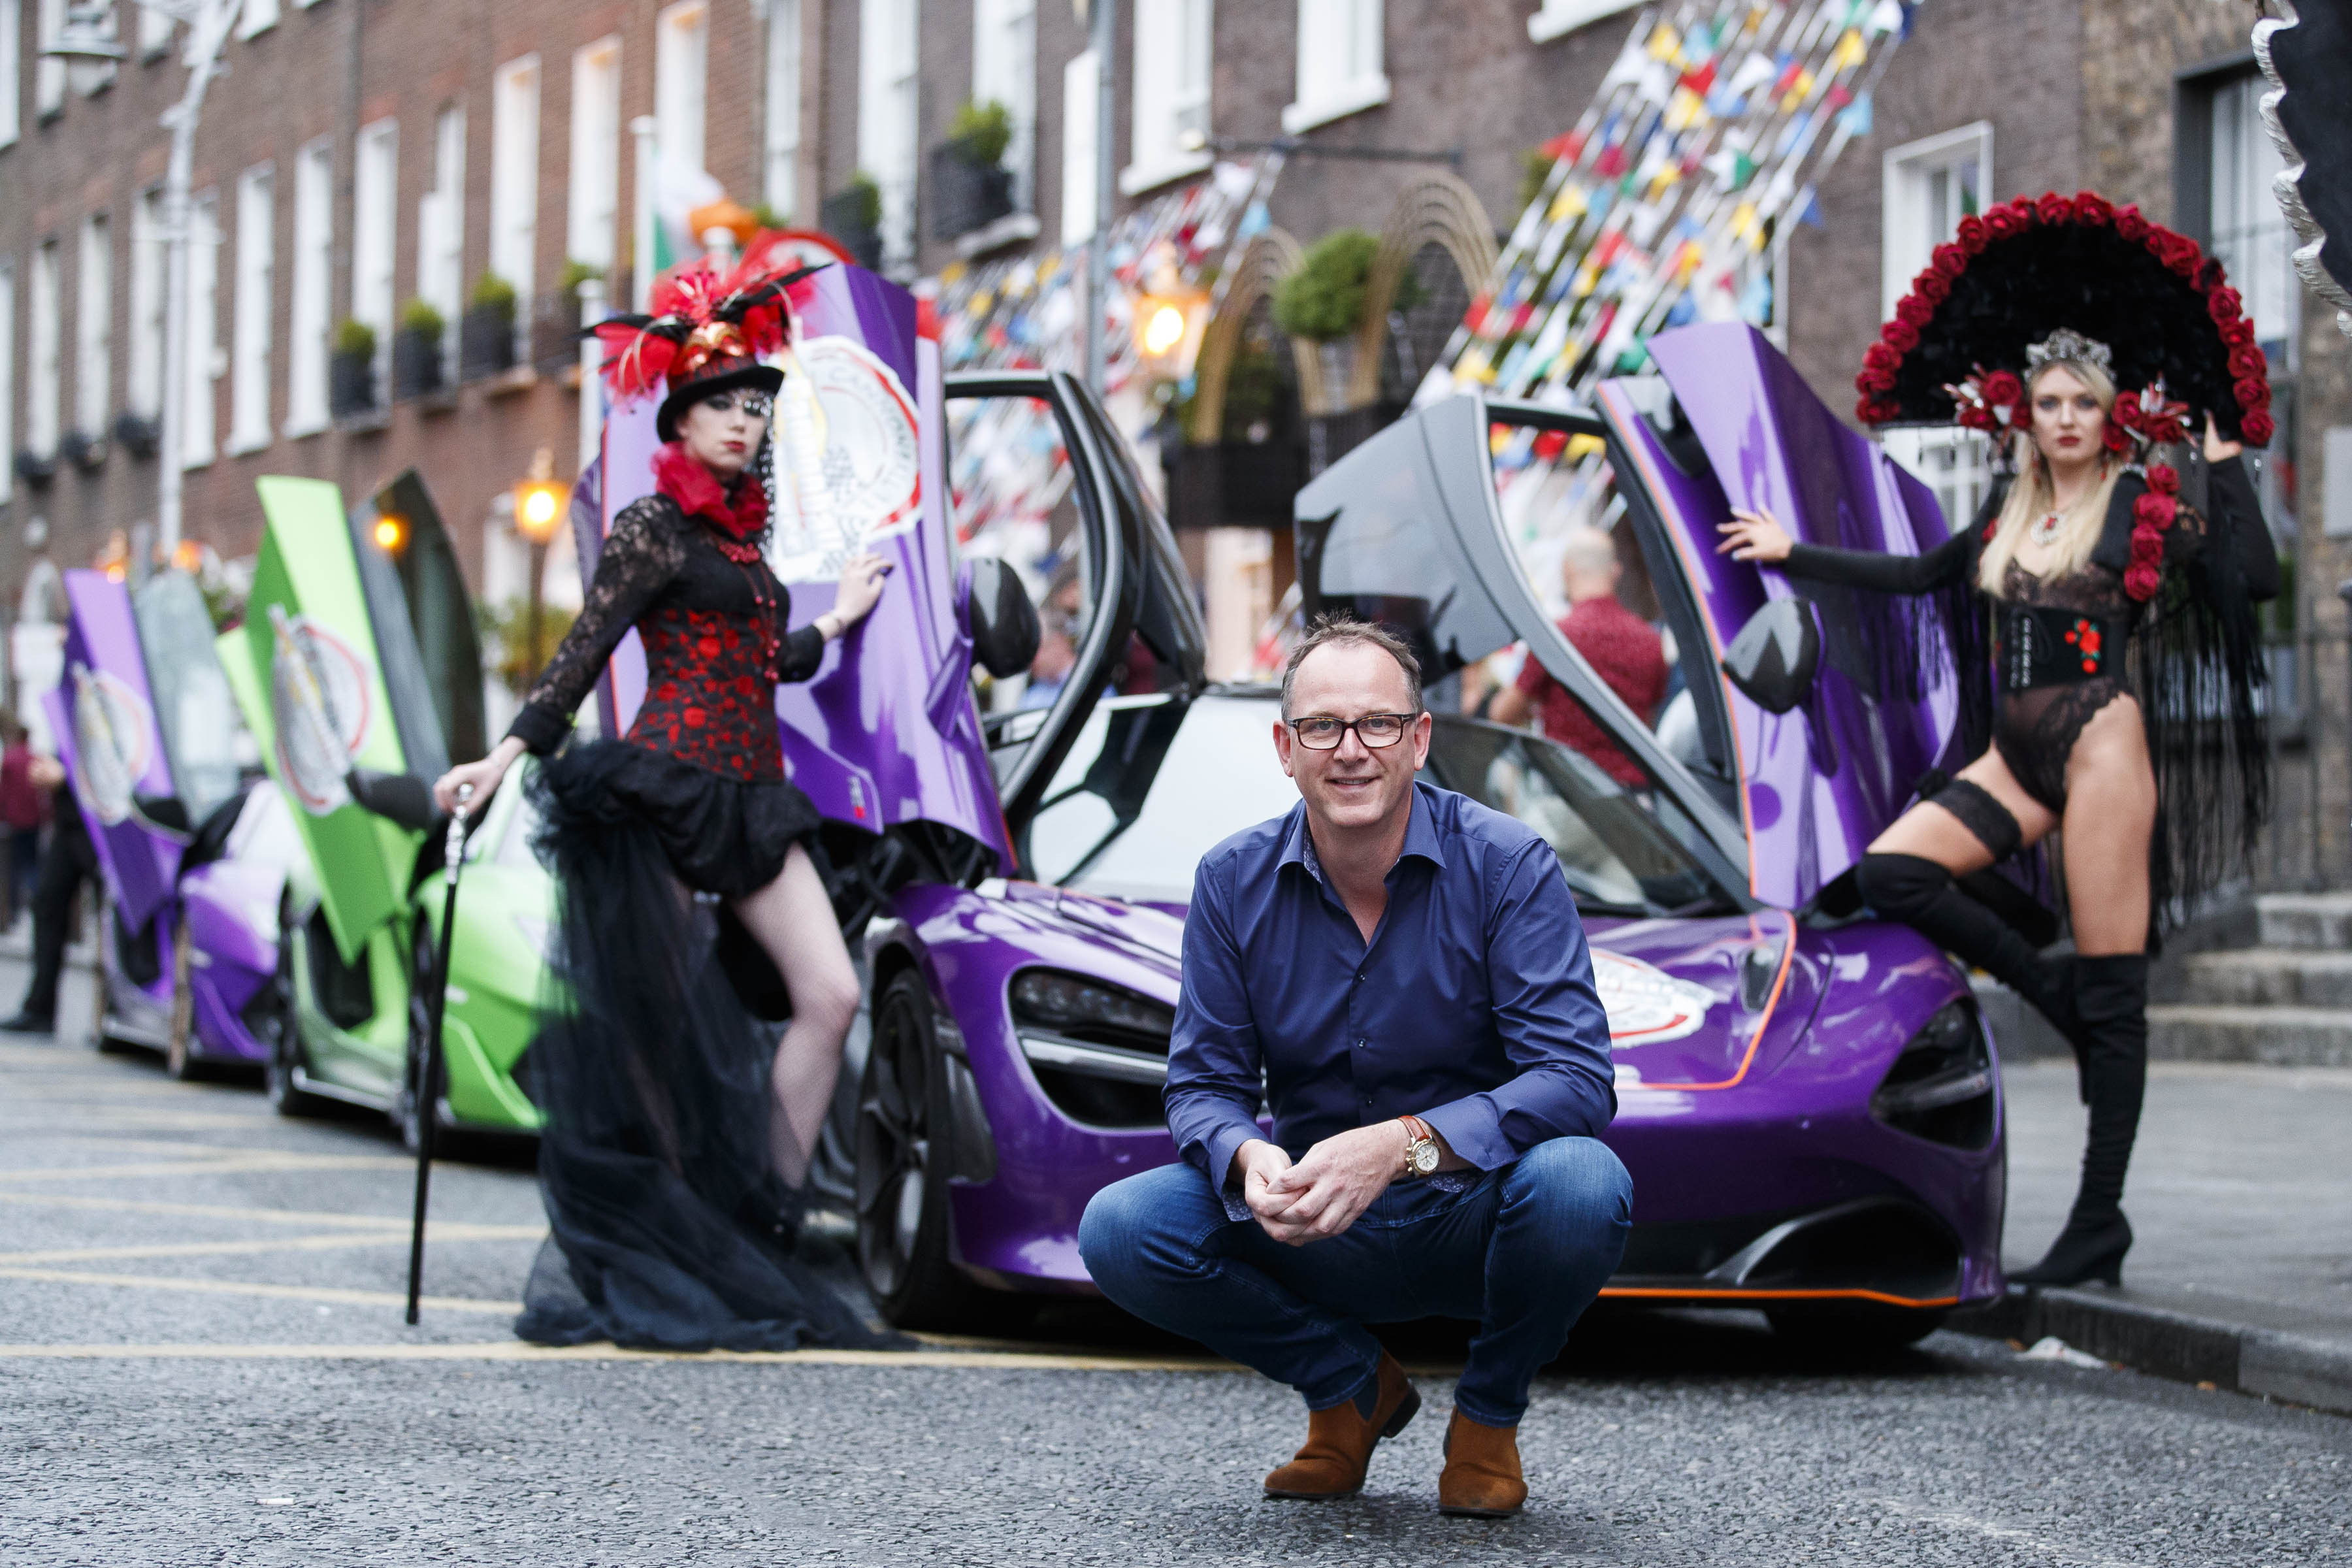 National launch of Cannonball Ireland and Edenderry tipped to be the biggest ever finish line